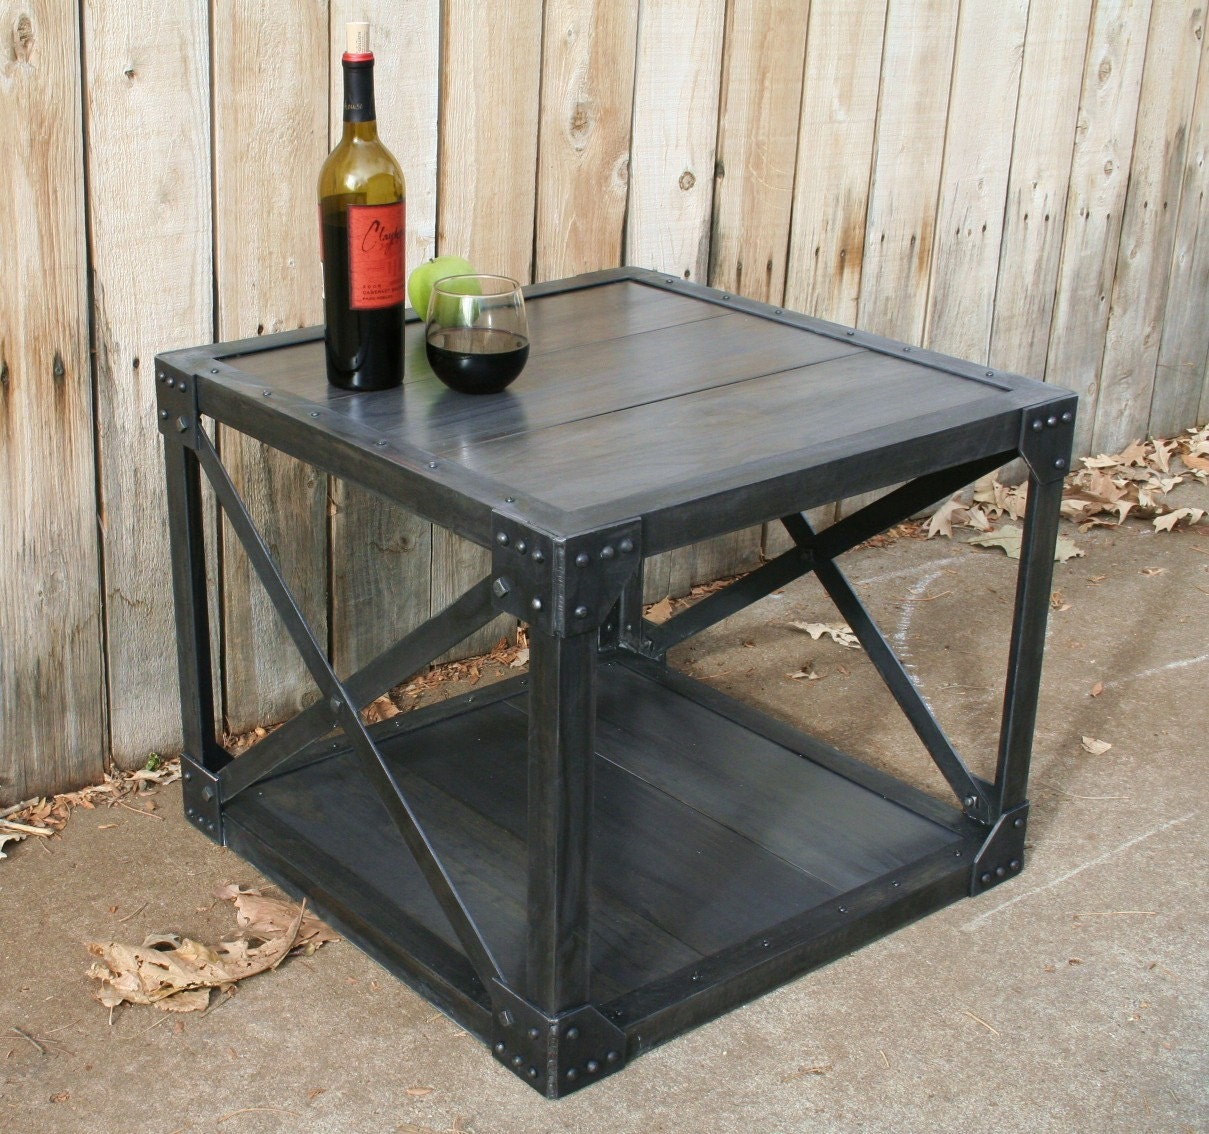 Industrial Themed Coffee Table: Vintage Handmade Wood & Metal Industrial Coffee Table Urban